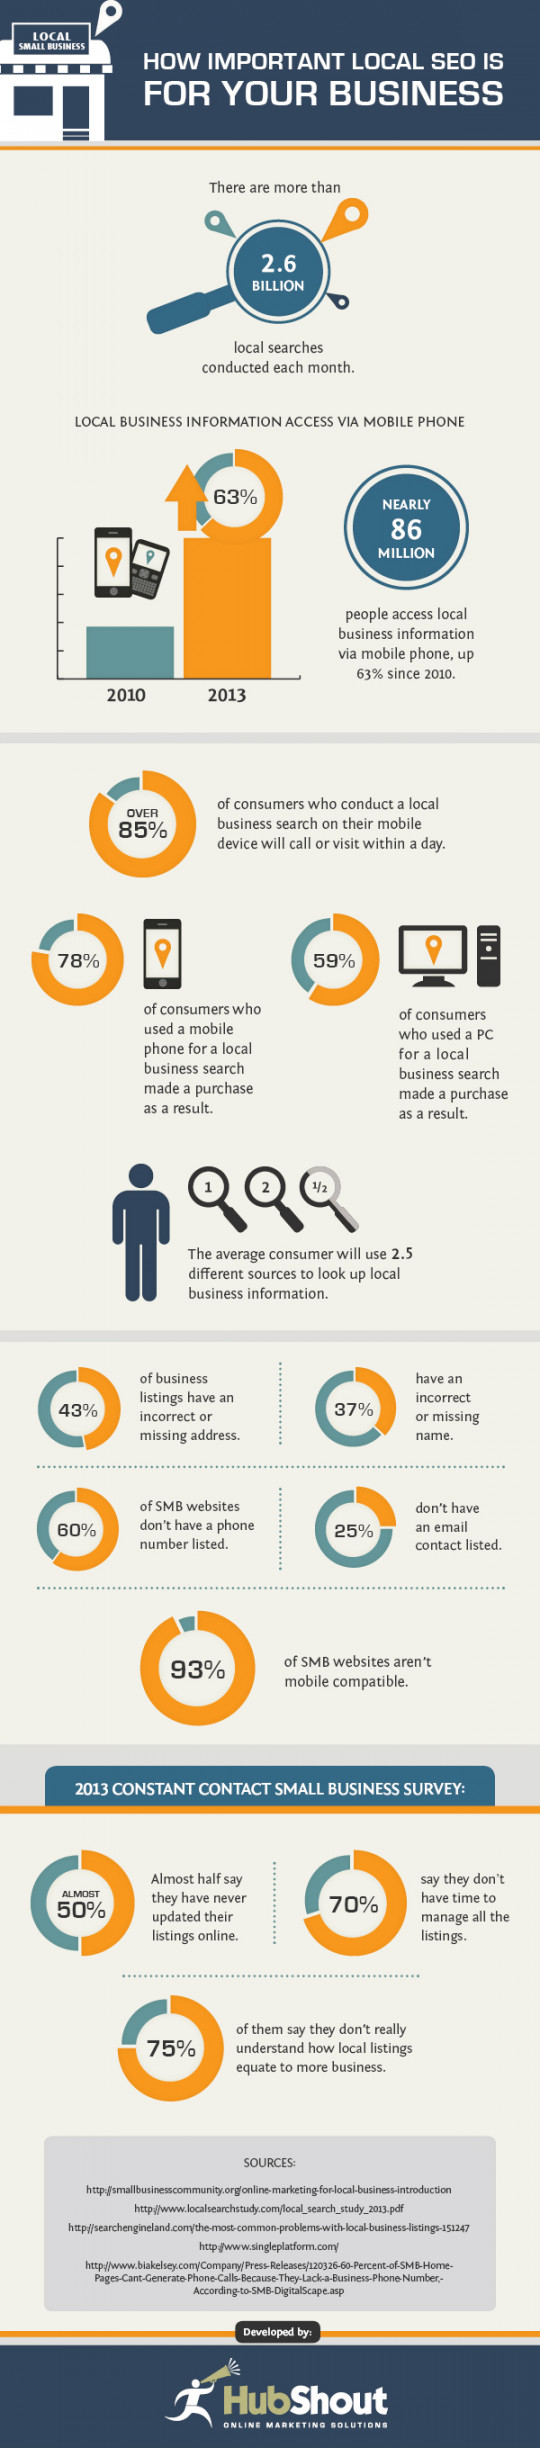 How Important Local SEO is for Your Business